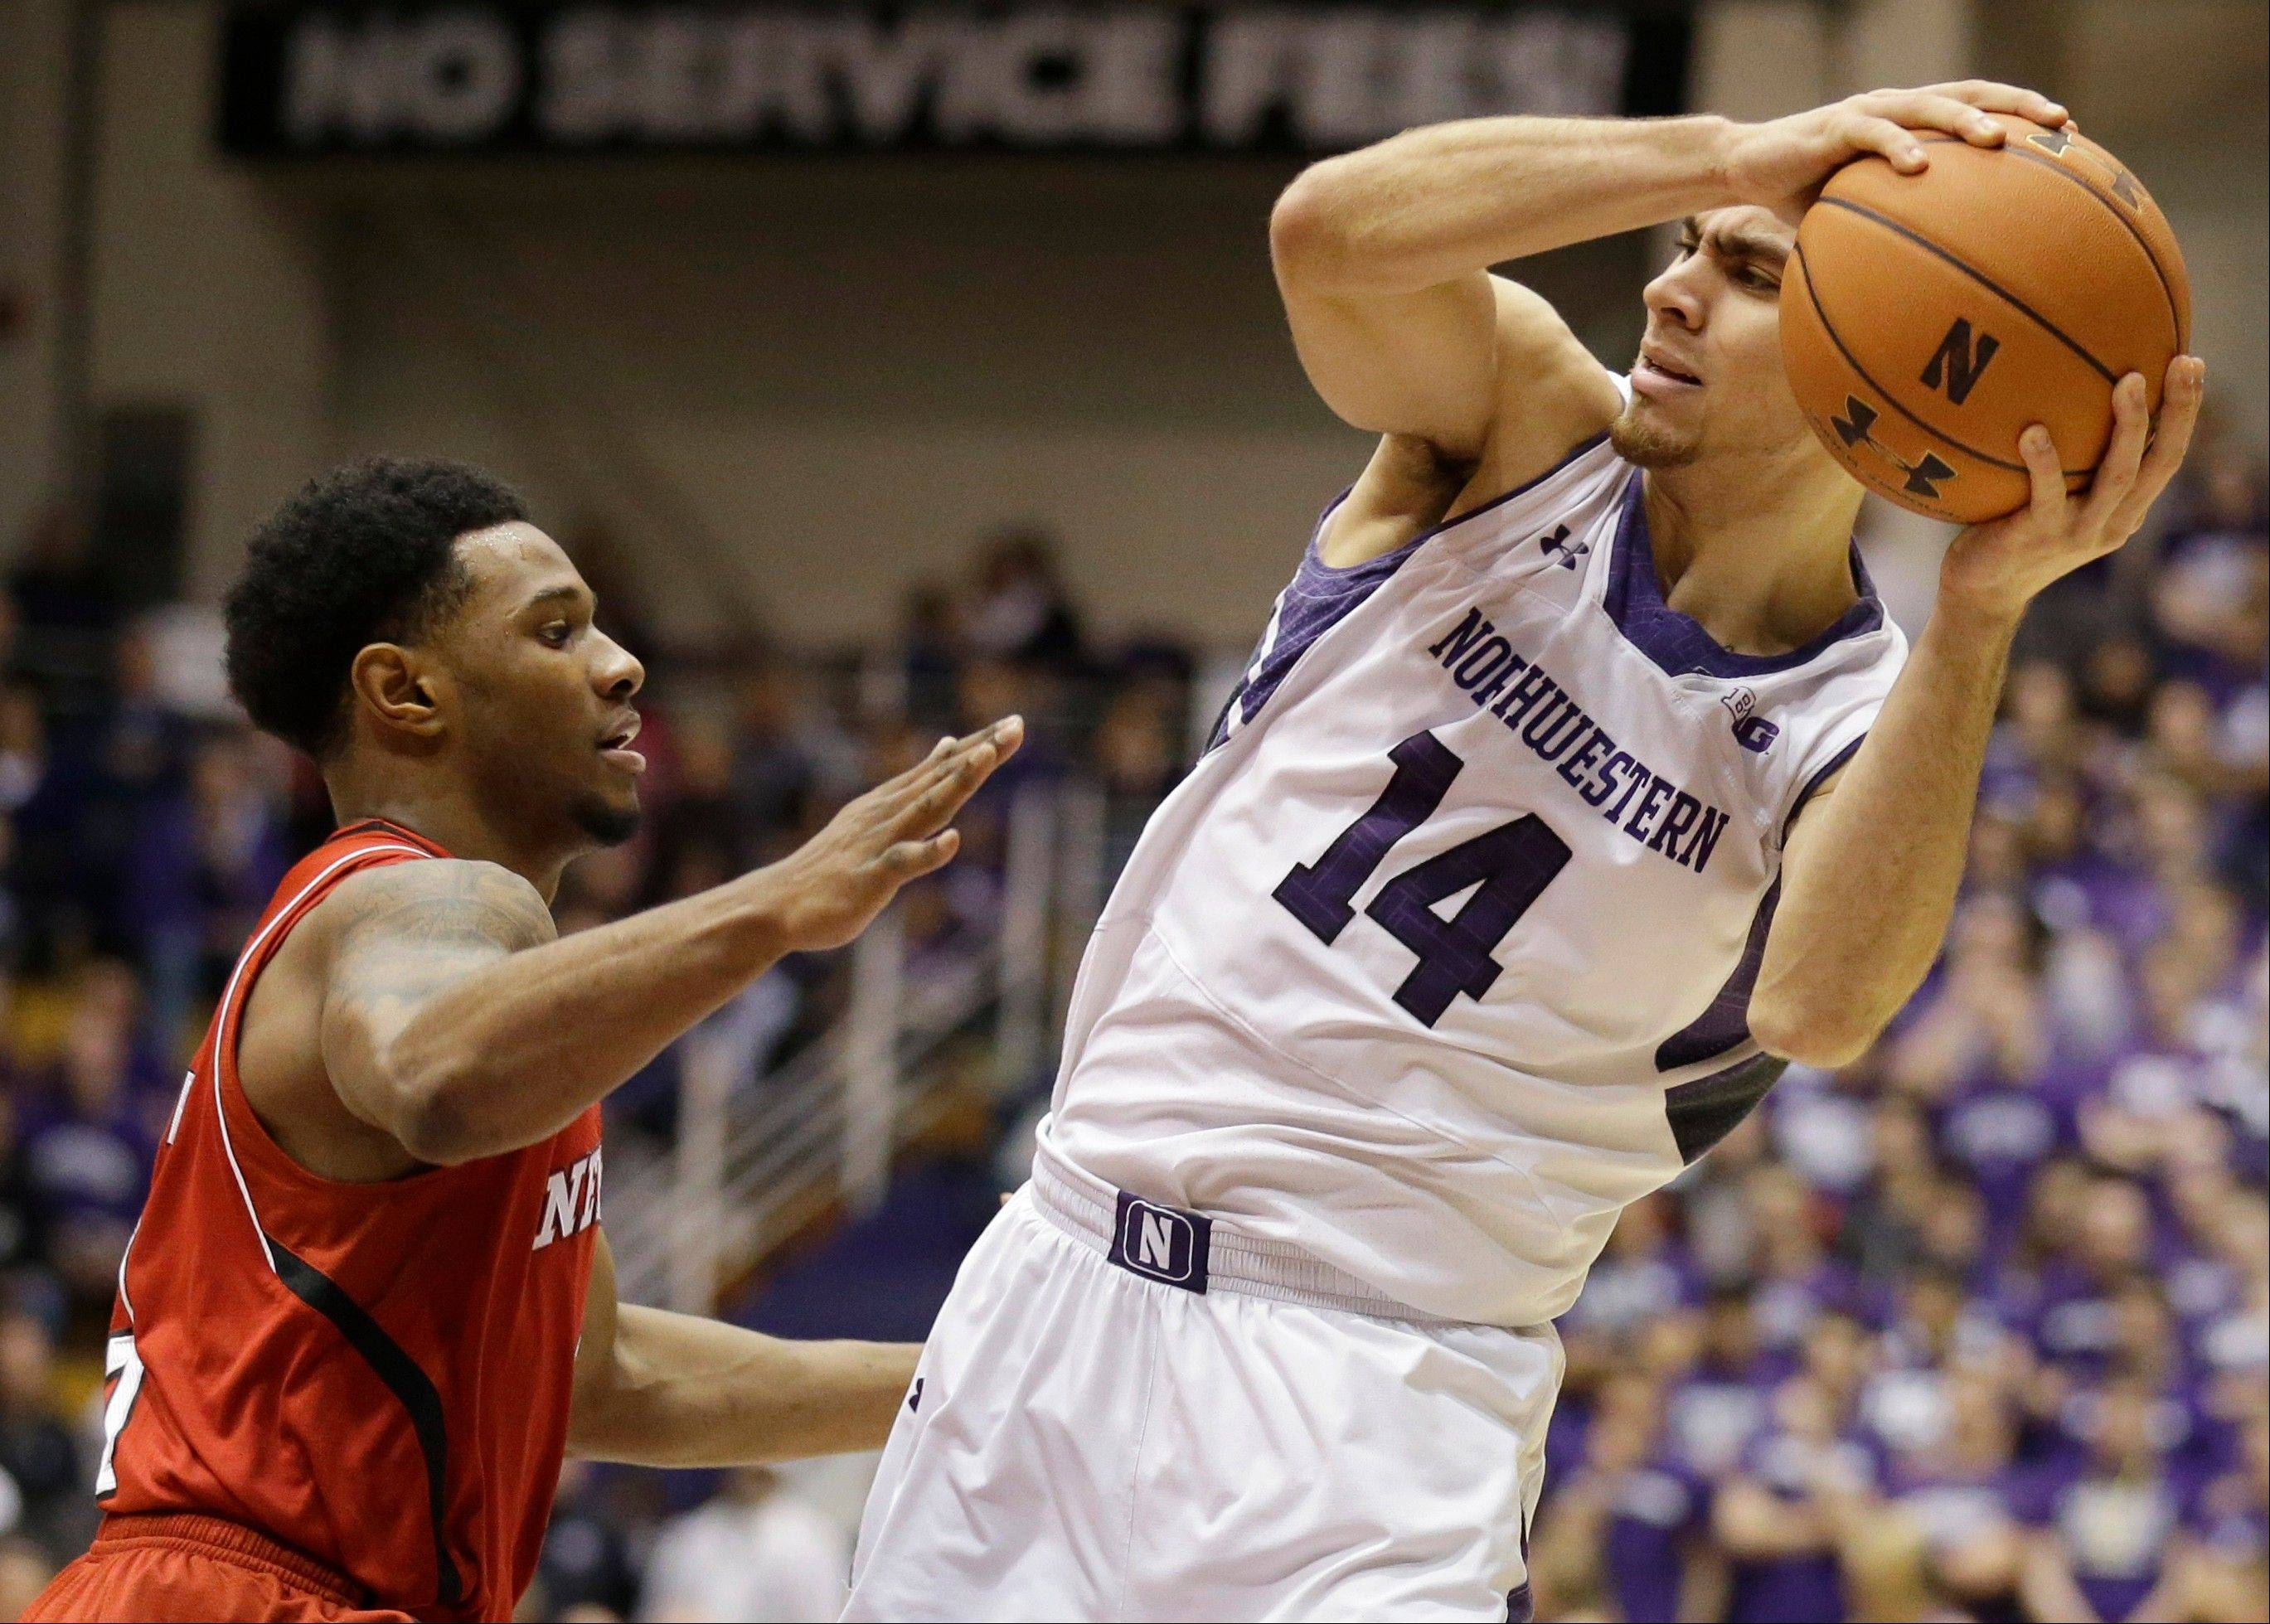 Northwestern guard Tre Demps, right, looks to a pass against Nebraska guard Benny Parker during the second half of an NCAA college basketball game in Evanston, Ill., on Saturday, Feb.8, 2014. Nebraska won 53-49. (AP Photo/Nam Y. Huh)